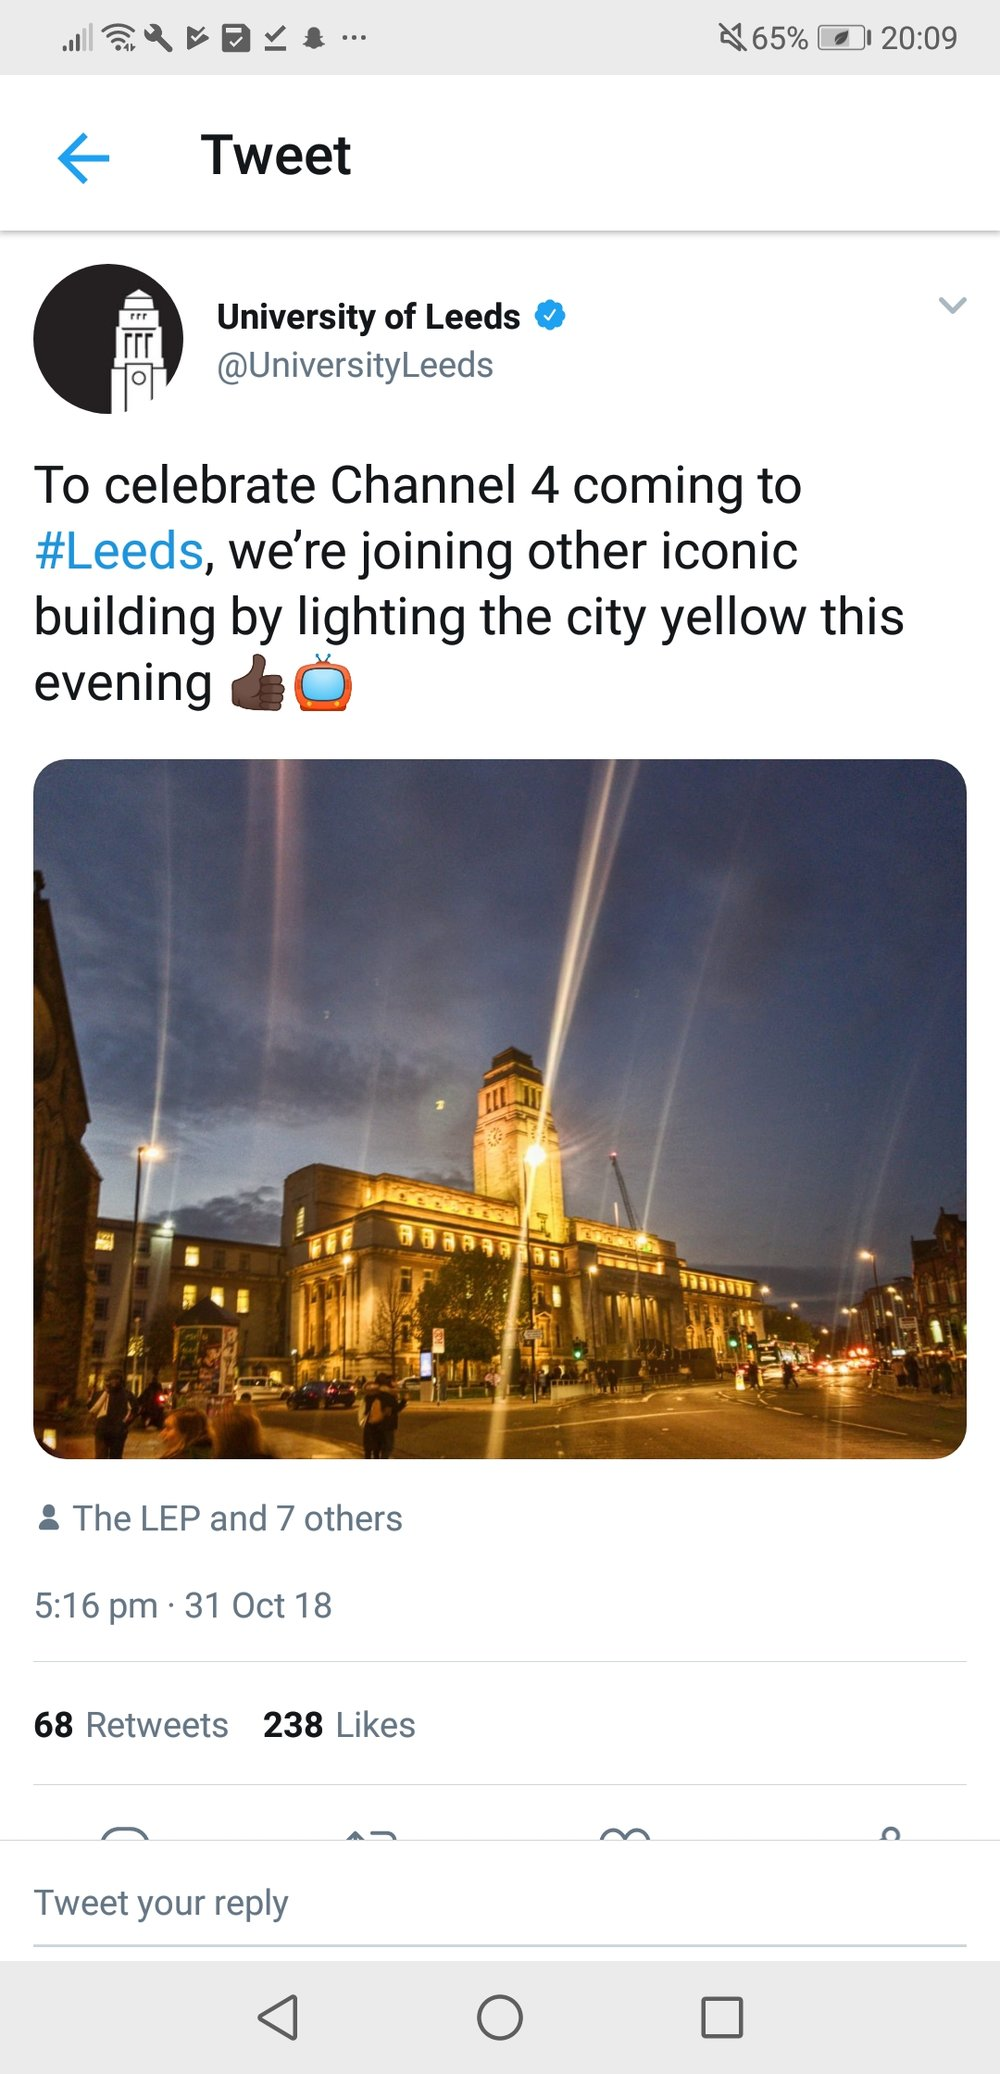 The university of Leeds lit up this evening